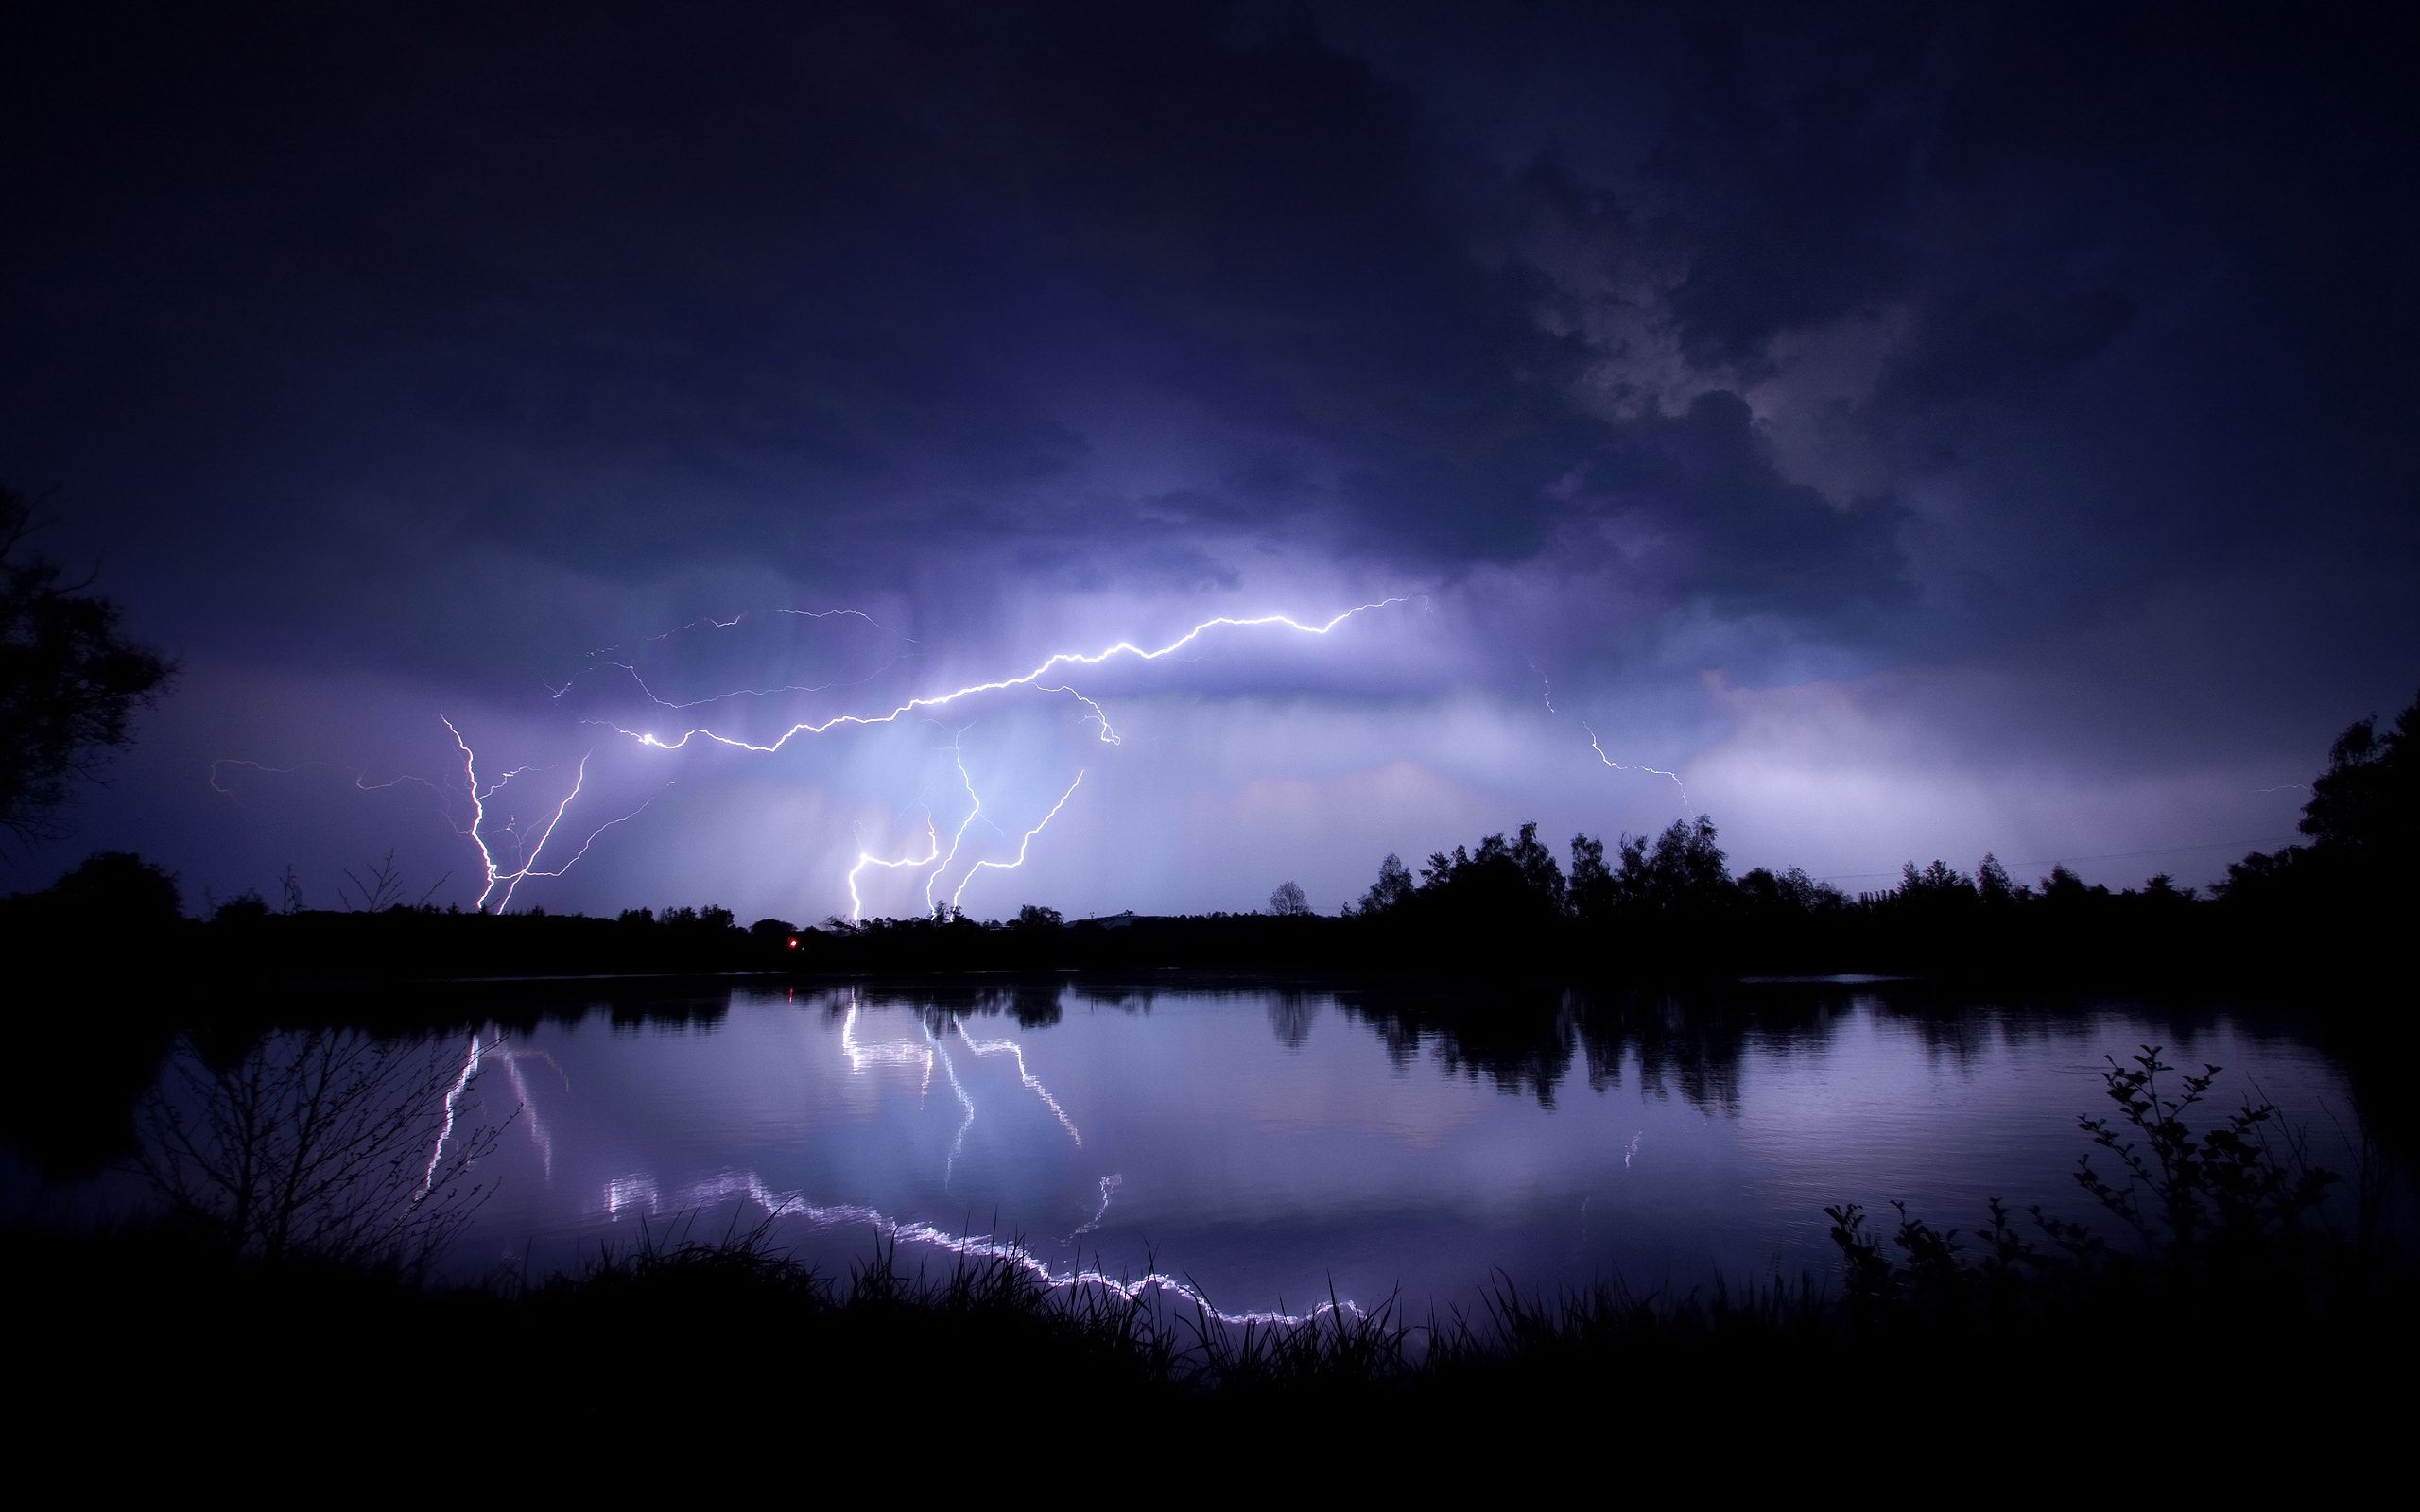 Lightning wallpapers on pc desktop full hd pictures - Full hd wallpaper pc download ...